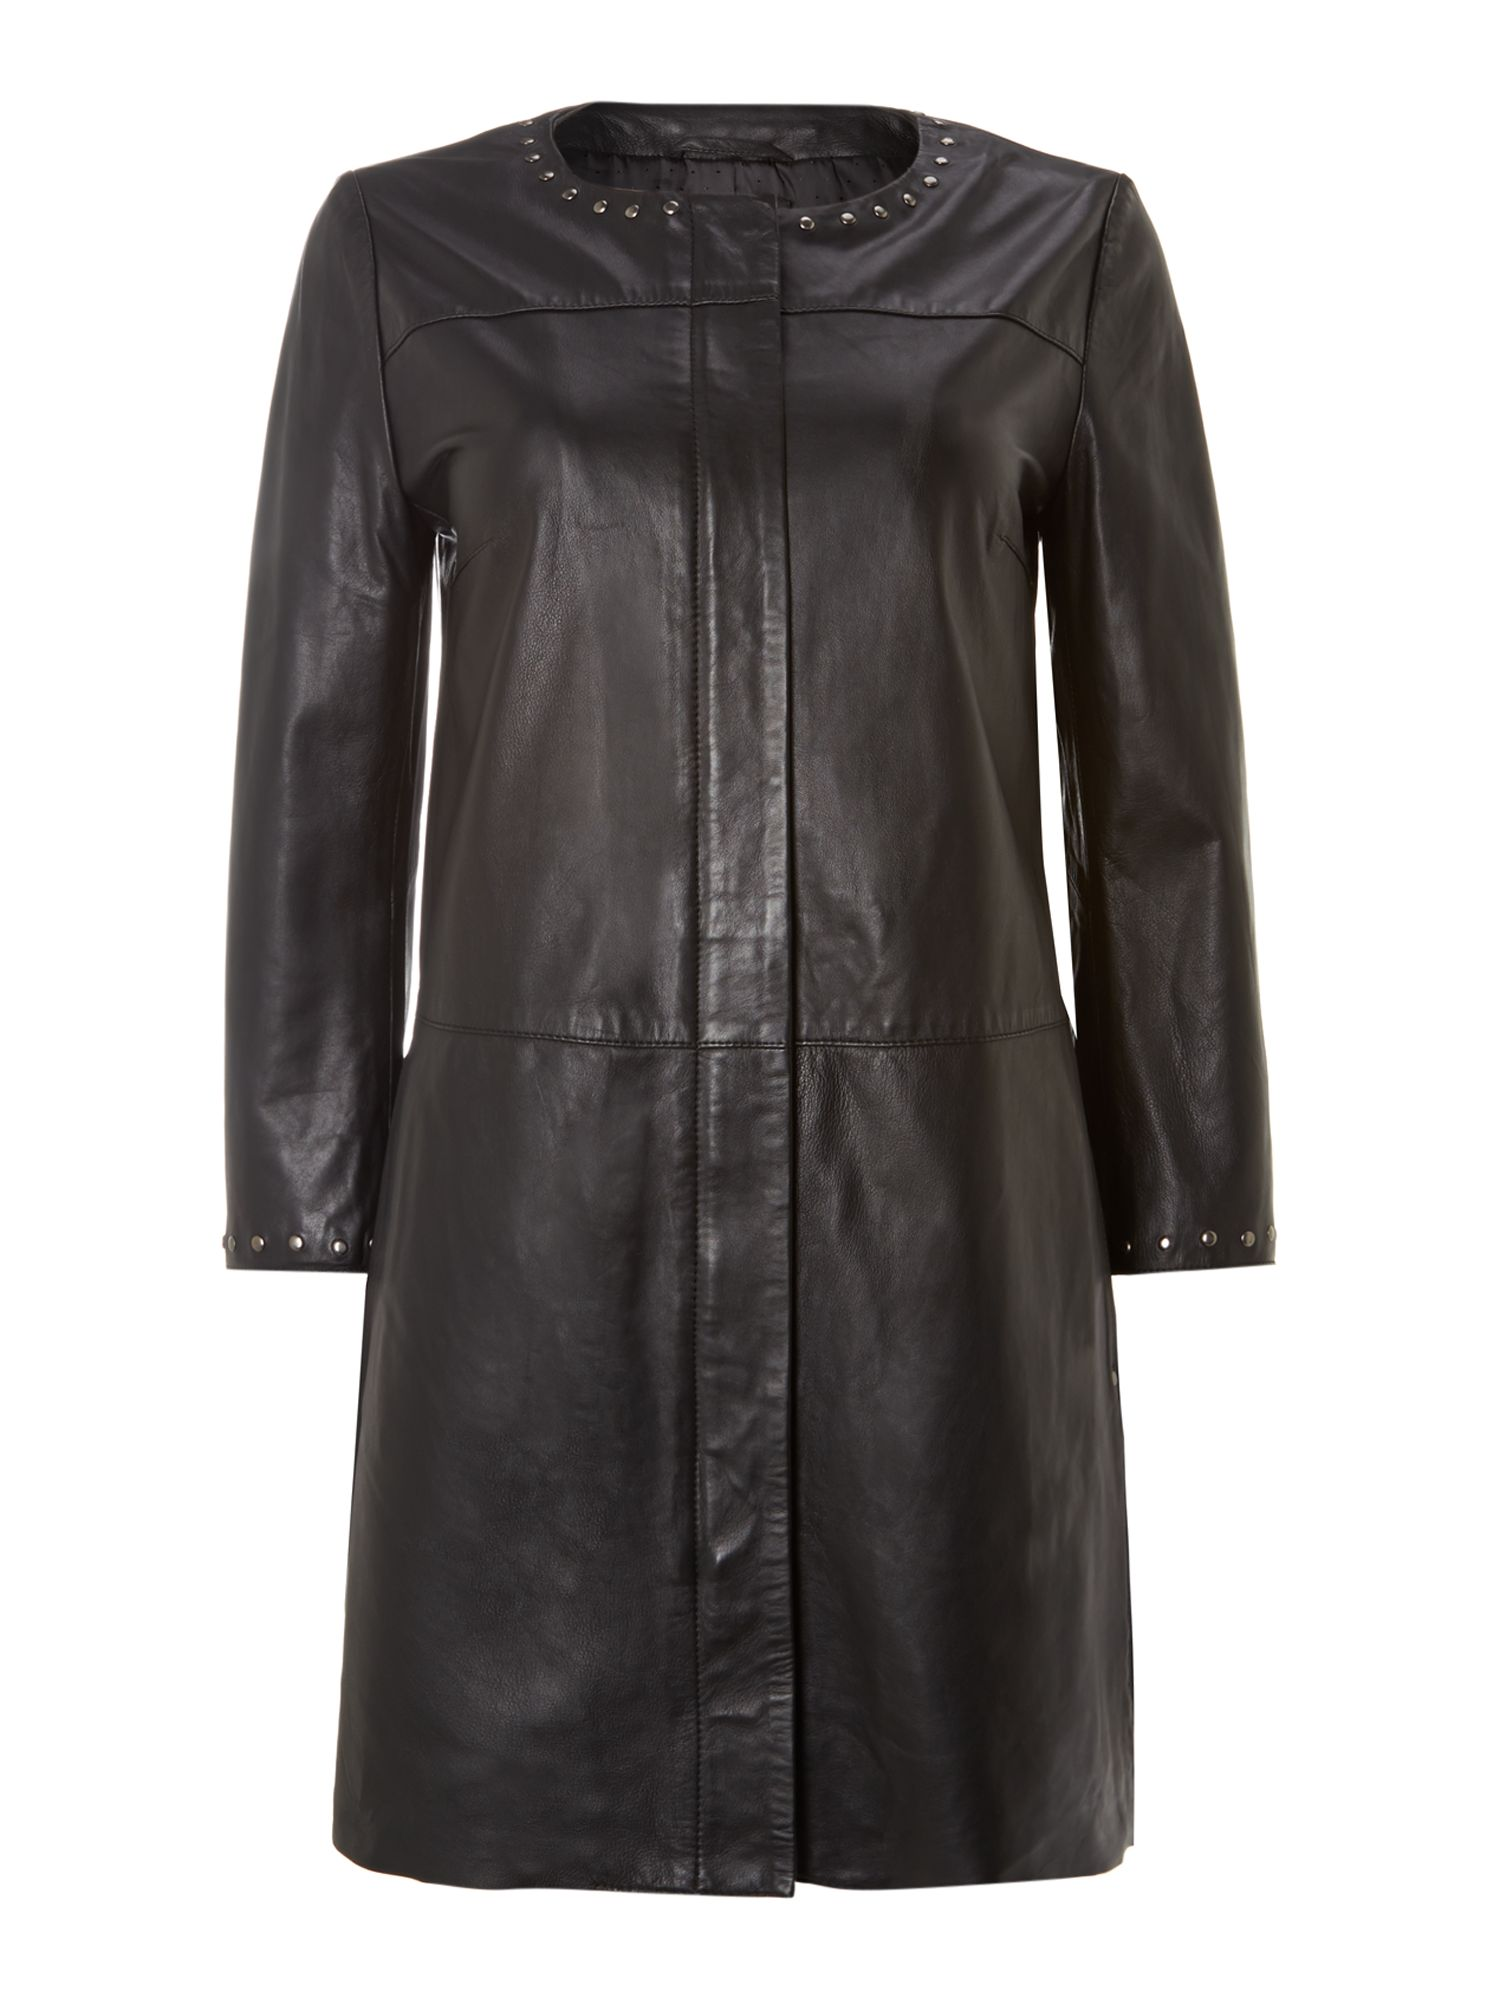 Cosmo long line leather coat with stud detail